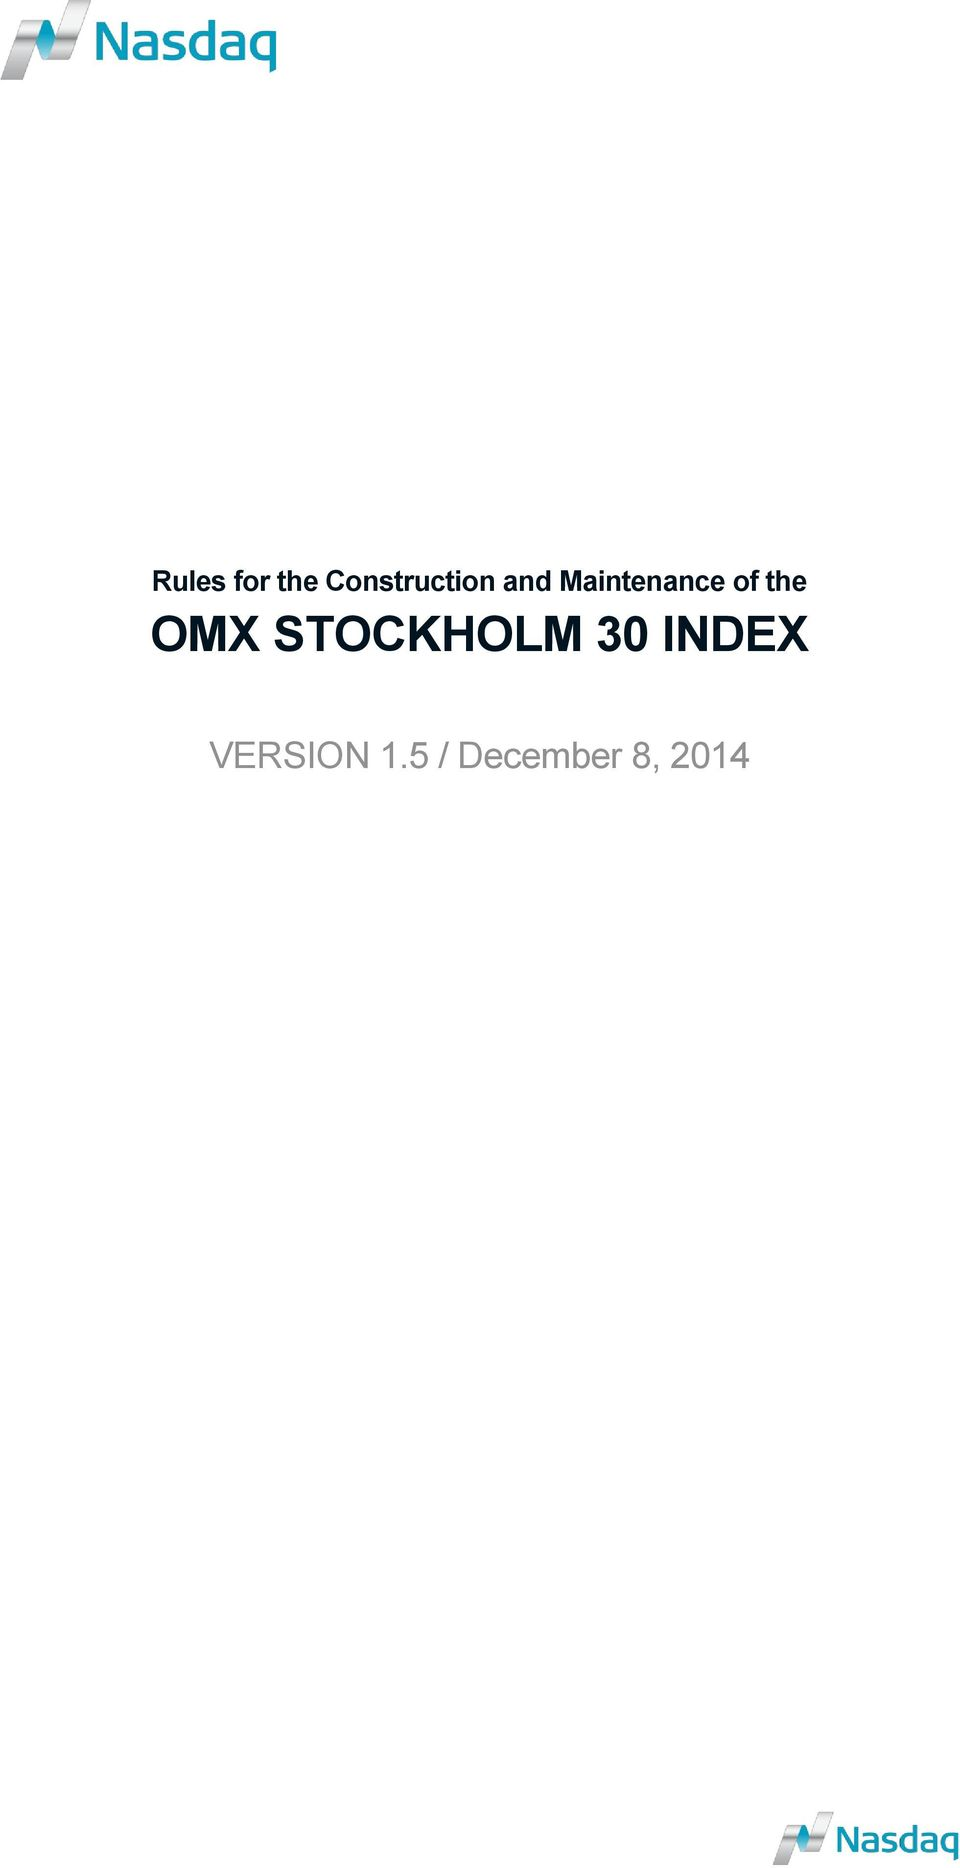 Maintenance of the OMX